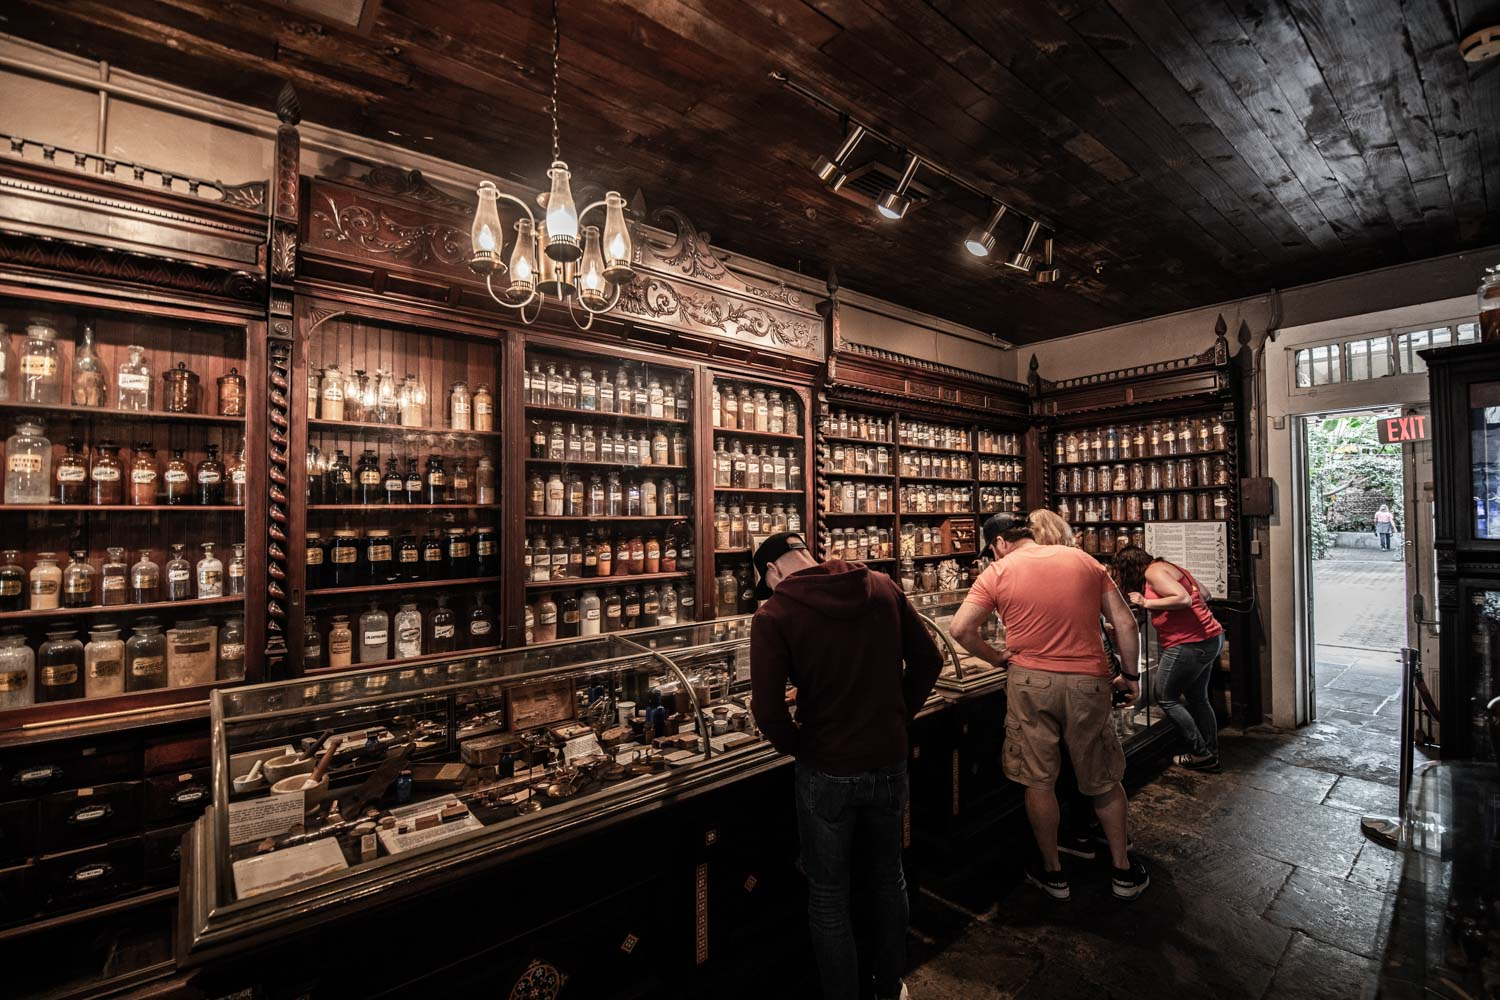 Pharmacy museum - 2 Days in New Orleans